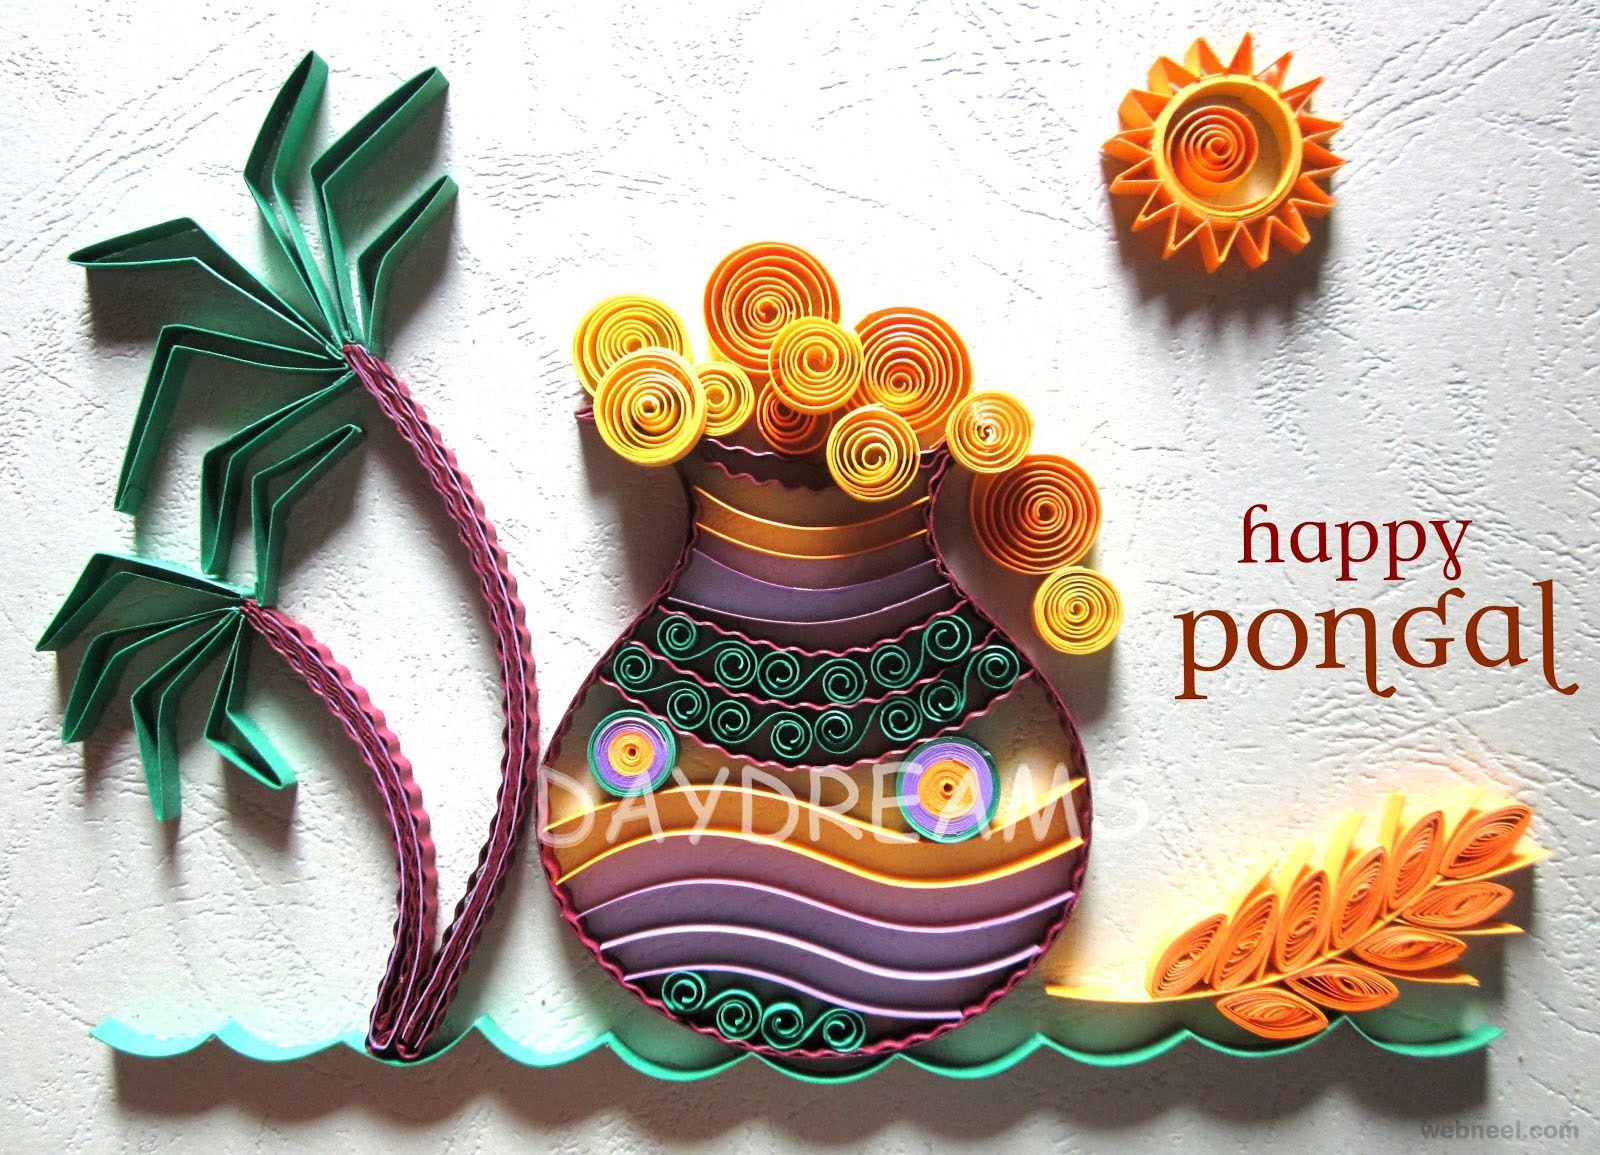 Pongal Greetings 10 Full Image